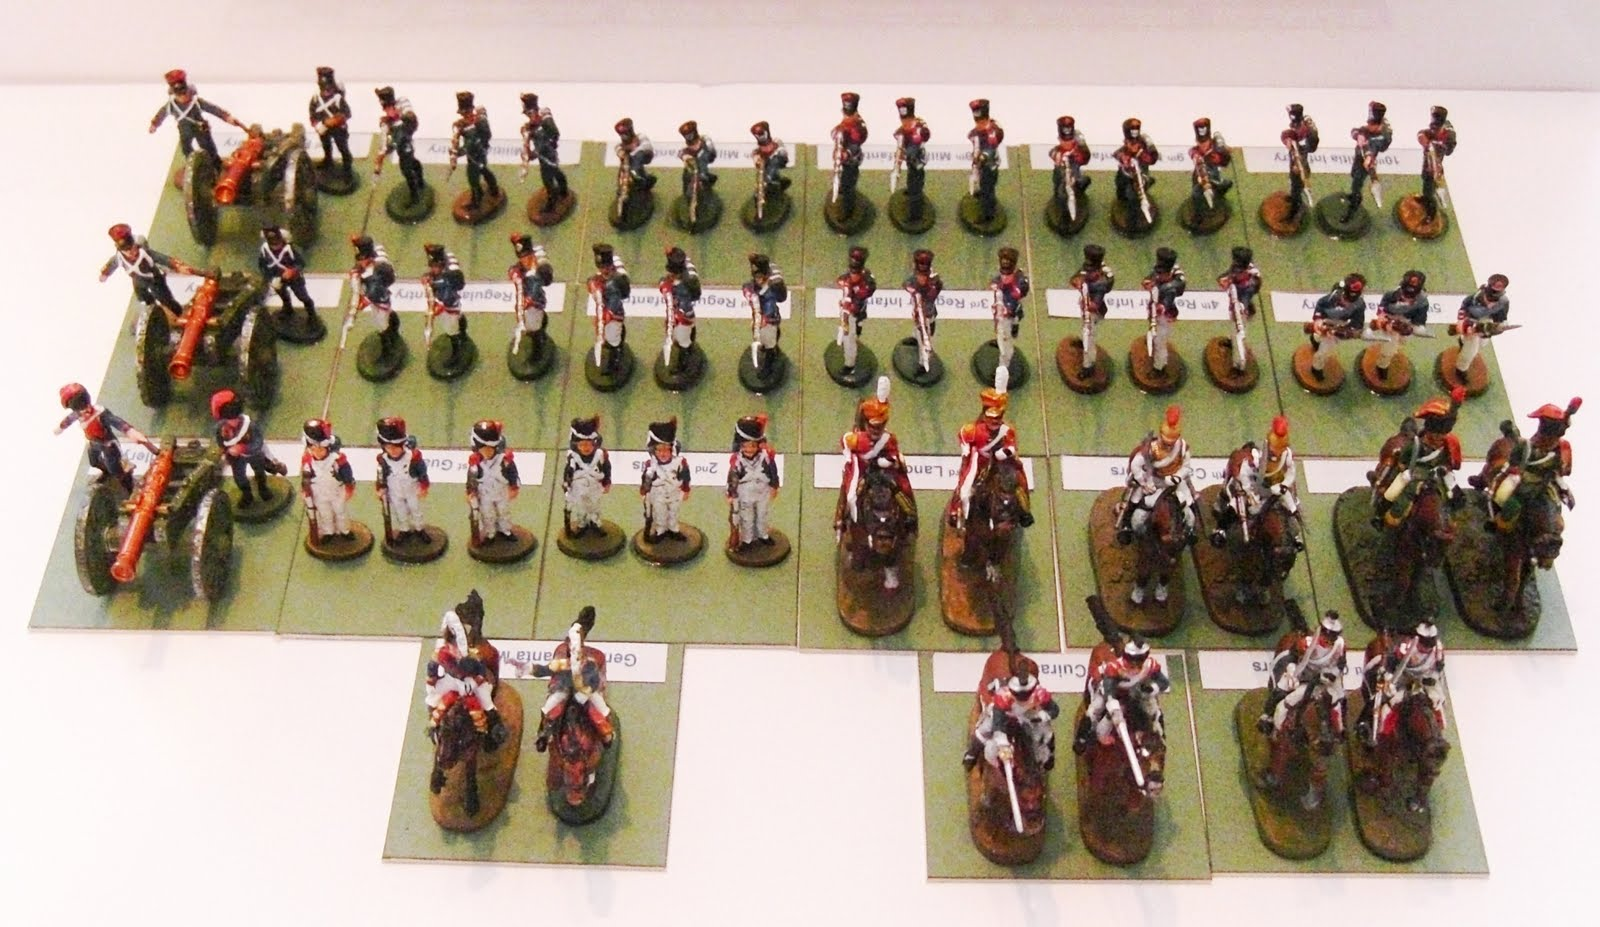 Updated with more happy wargaming malc wargaming miniature wargaming